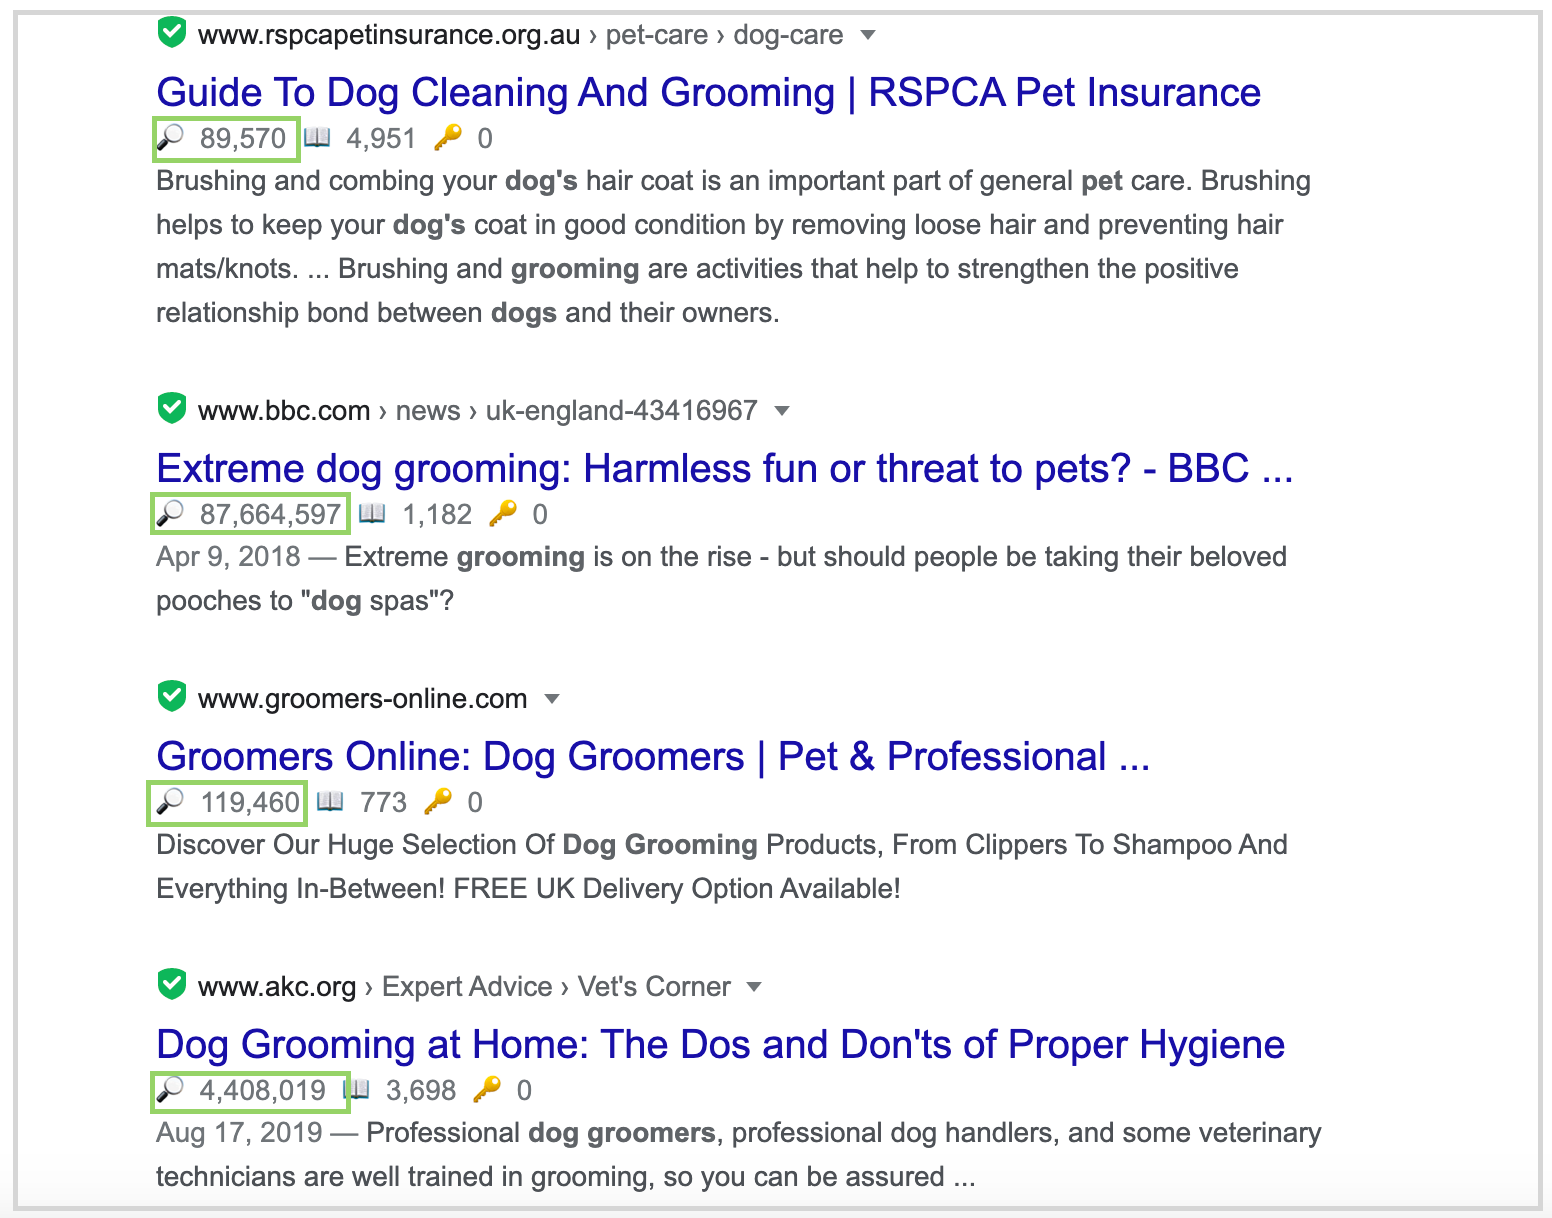 average domain traffic for pages ranking for the dog grooming scissors keyword